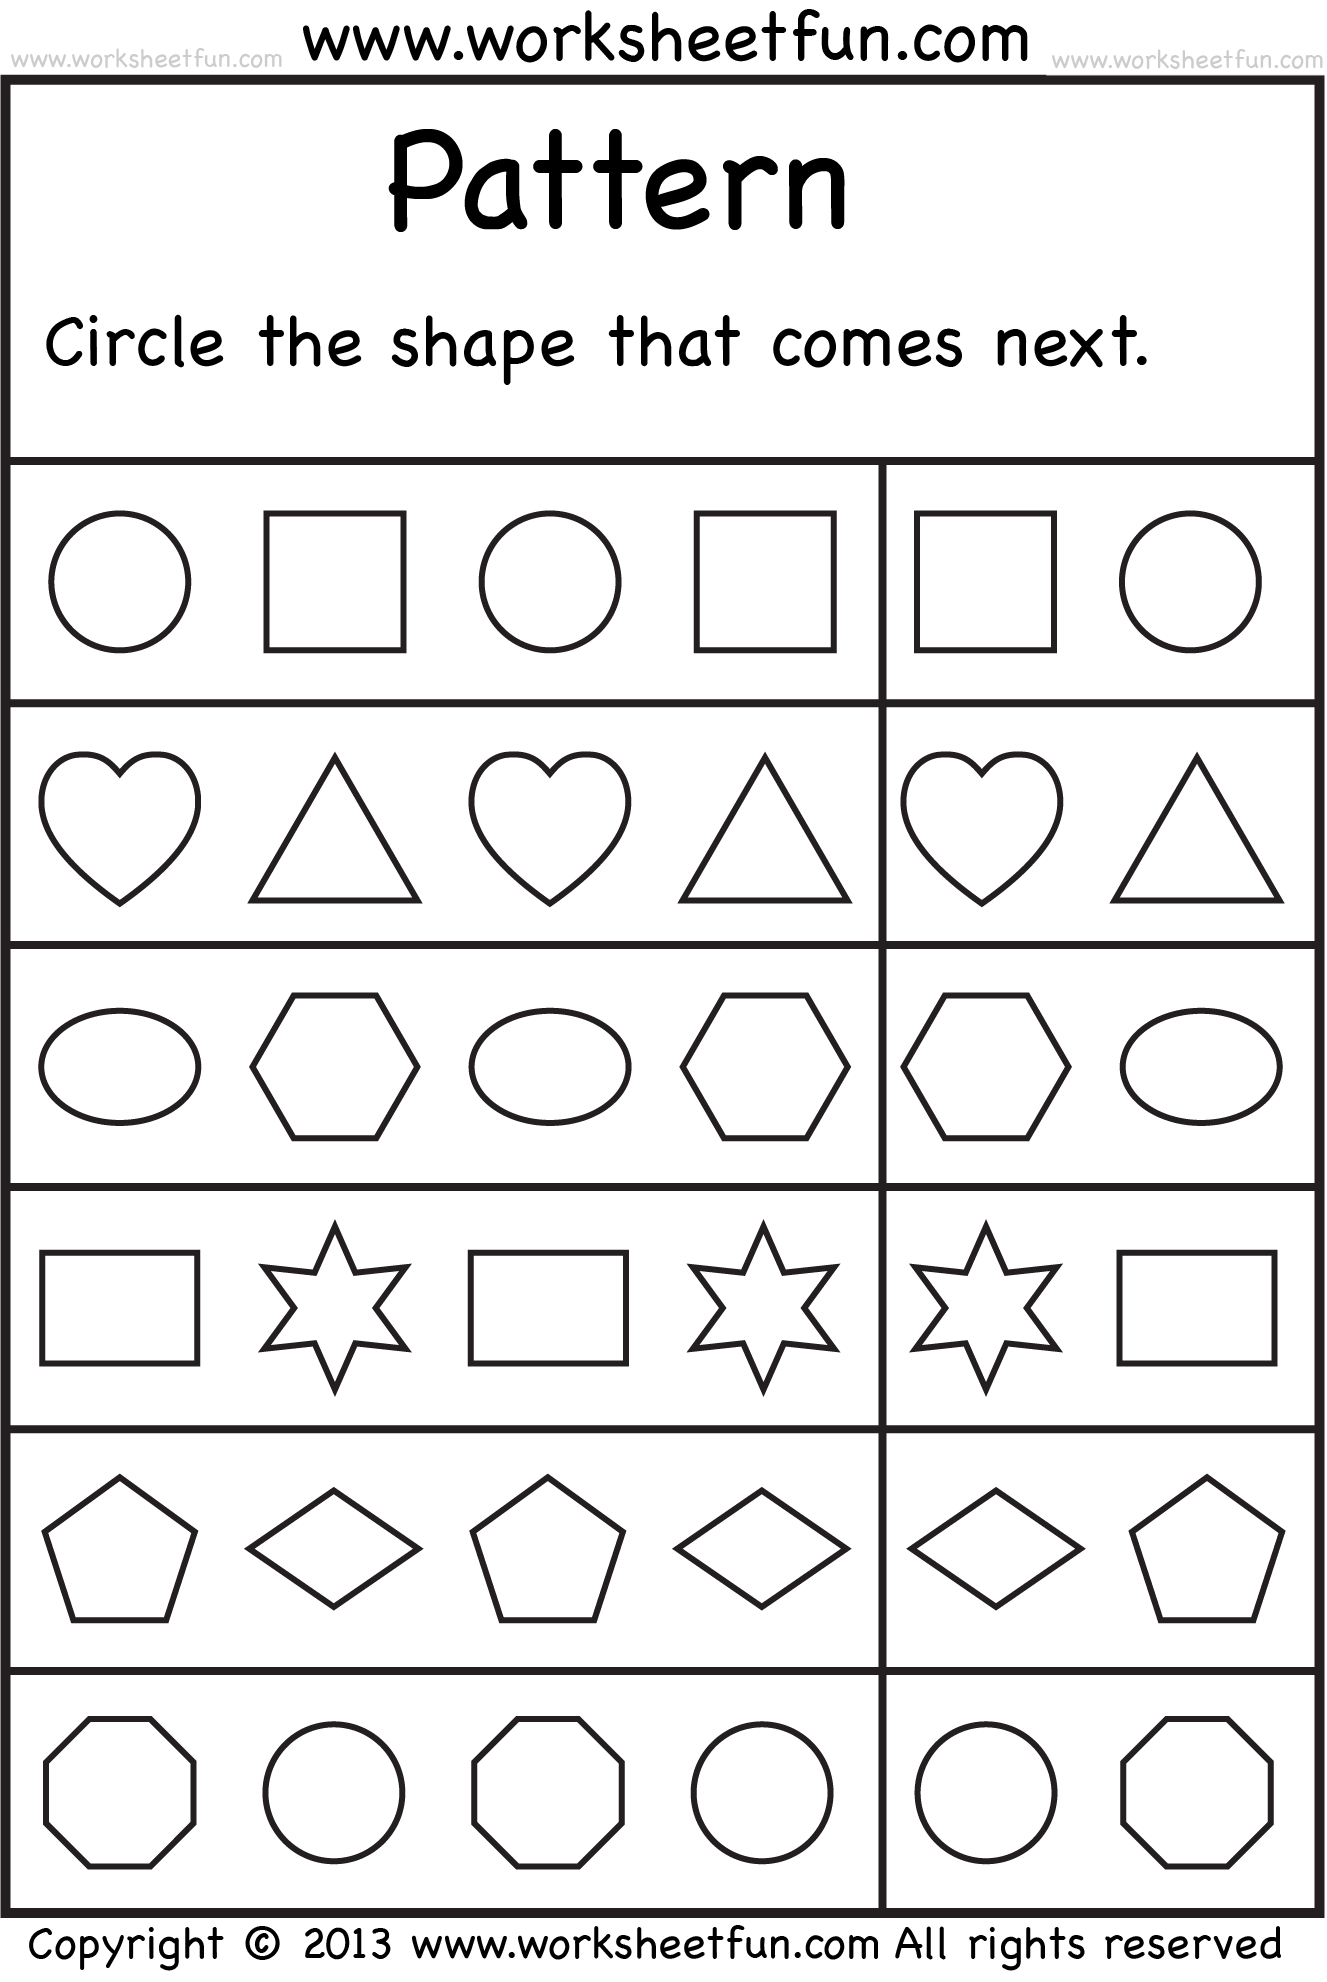 Aldiablosus  Pleasing  Images About School Worksheets On Pinterest  Number Words  With Fascinating  Images About School Worksheets On Pinterest  Number Words Alphabet Worksheets And Free Printable Kindergarten Worksheets With Enchanting Spanish Days Of The Week Worksheet Also State Of The Union Address Worksheet In Addition Science  States Of Matter Worksheet Answers And St Grade Sight Word Worksheets As Well As Right Triangles Worksheet Additionally Solution Stoichiometry Worksheet With Answers From Pinterestcom With Aldiablosus  Fascinating  Images About School Worksheets On Pinterest  Number Words  With Enchanting  Images About School Worksheets On Pinterest  Number Words Alphabet Worksheets And Free Printable Kindergarten Worksheets And Pleasing Spanish Days Of The Week Worksheet Also State Of The Union Address Worksheet In Addition Science  States Of Matter Worksheet Answers From Pinterestcom